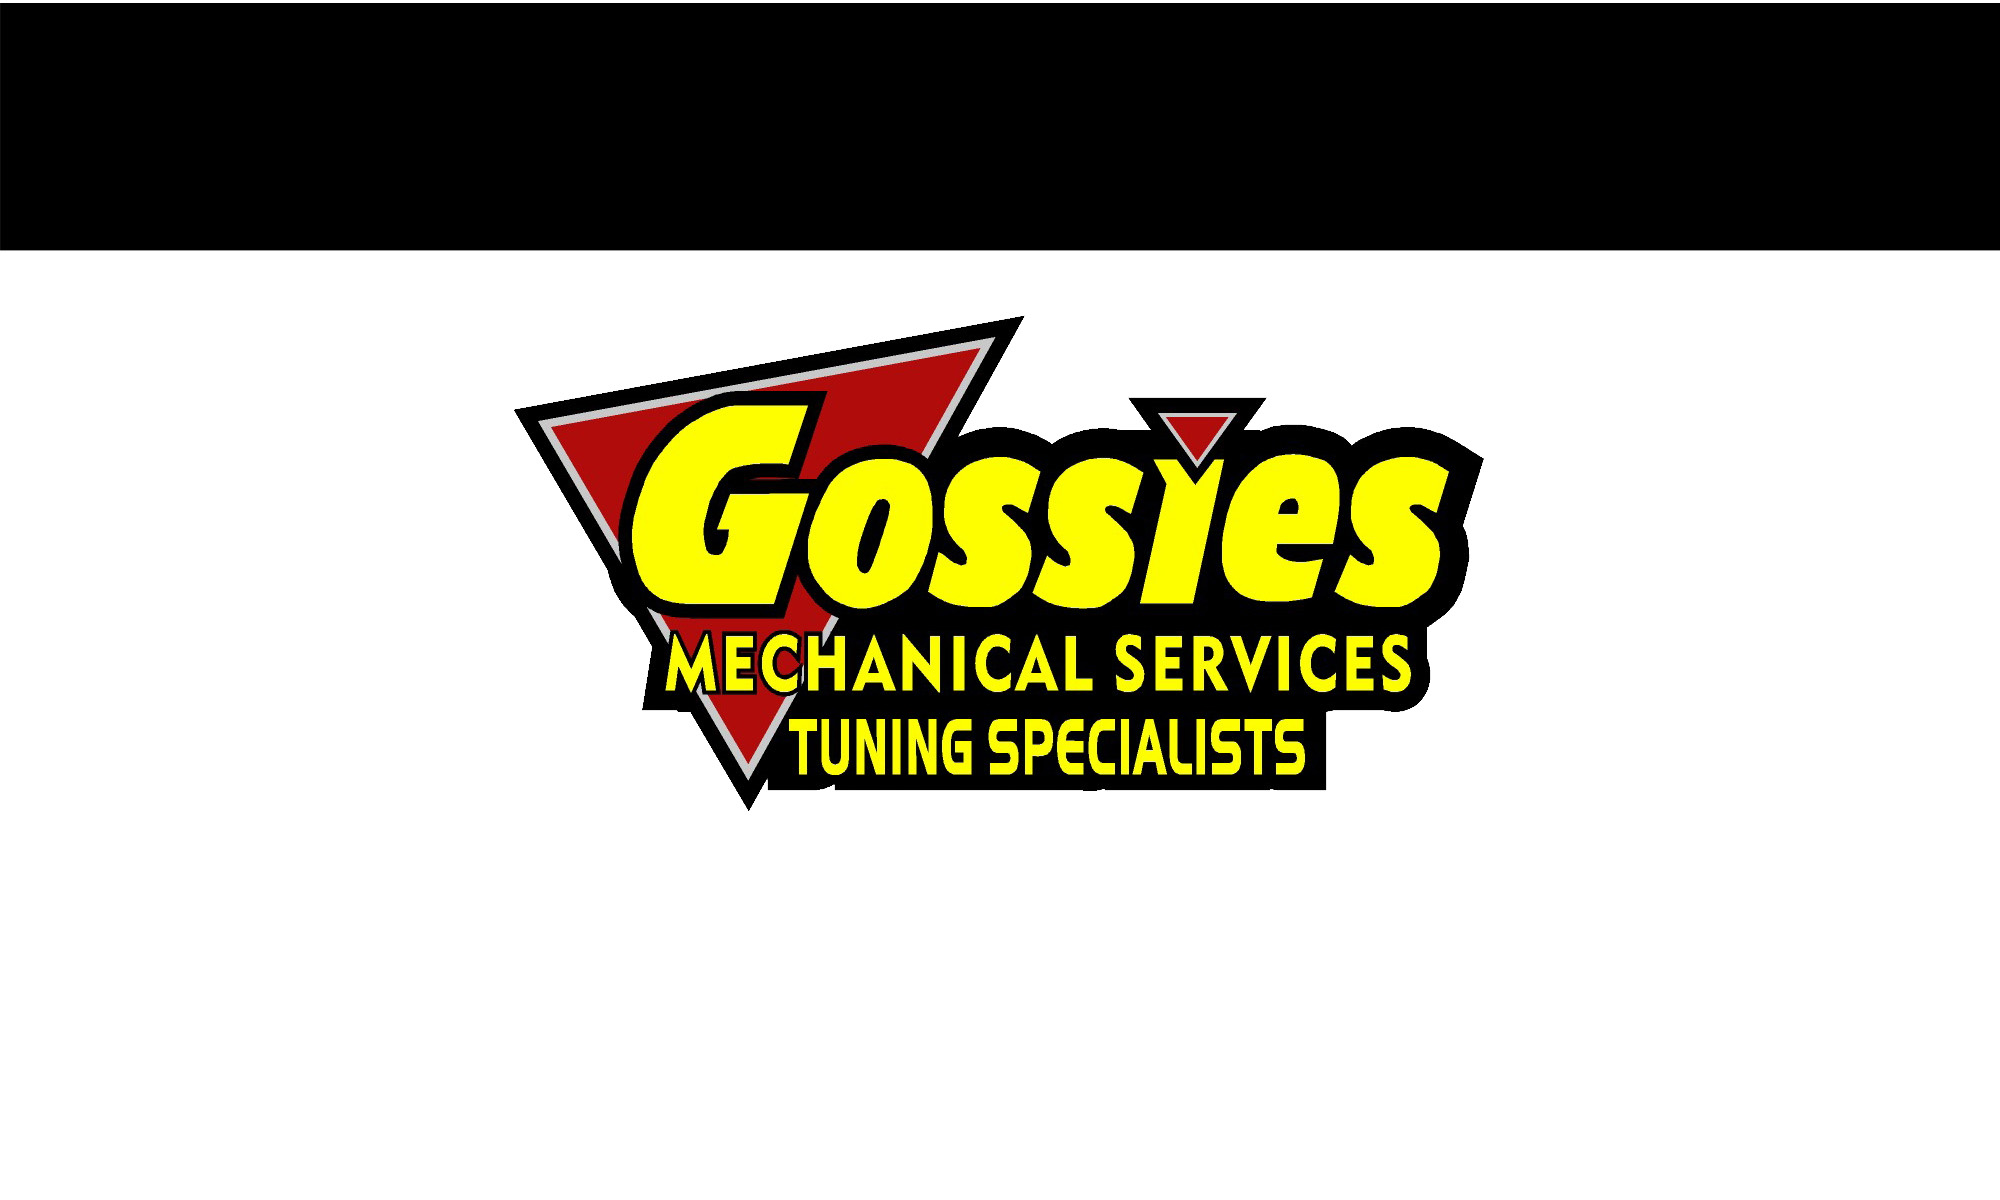 Gossies Mechanical Services